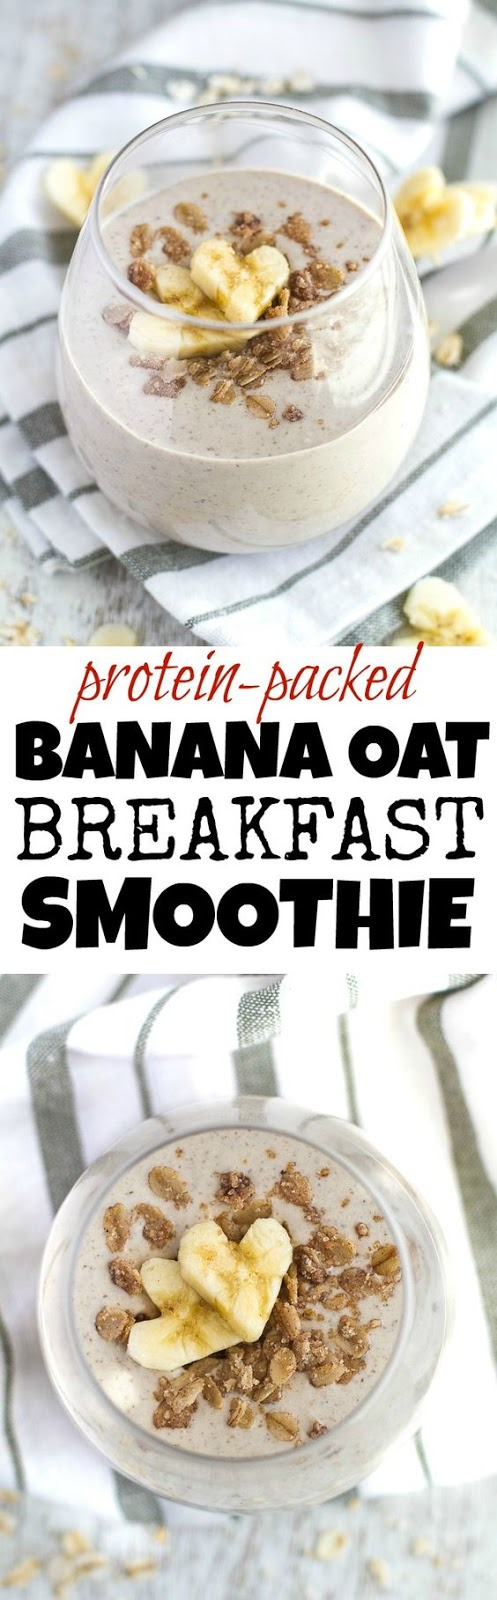 Banana Oat Breakfast Smoothie Recipe | Keto Breakfast ketogenic diet , Keto Breakfast ideas easy , Keto Breakfast  smoothie , smoothie recipes healthy , smoothie recipes fruit , smoothie recipes protein , smoothie recipes healthy breakfast #smoothies #smoothierecipe #breakfastrecipe #oat #banana #healthybreakfast #breakfast